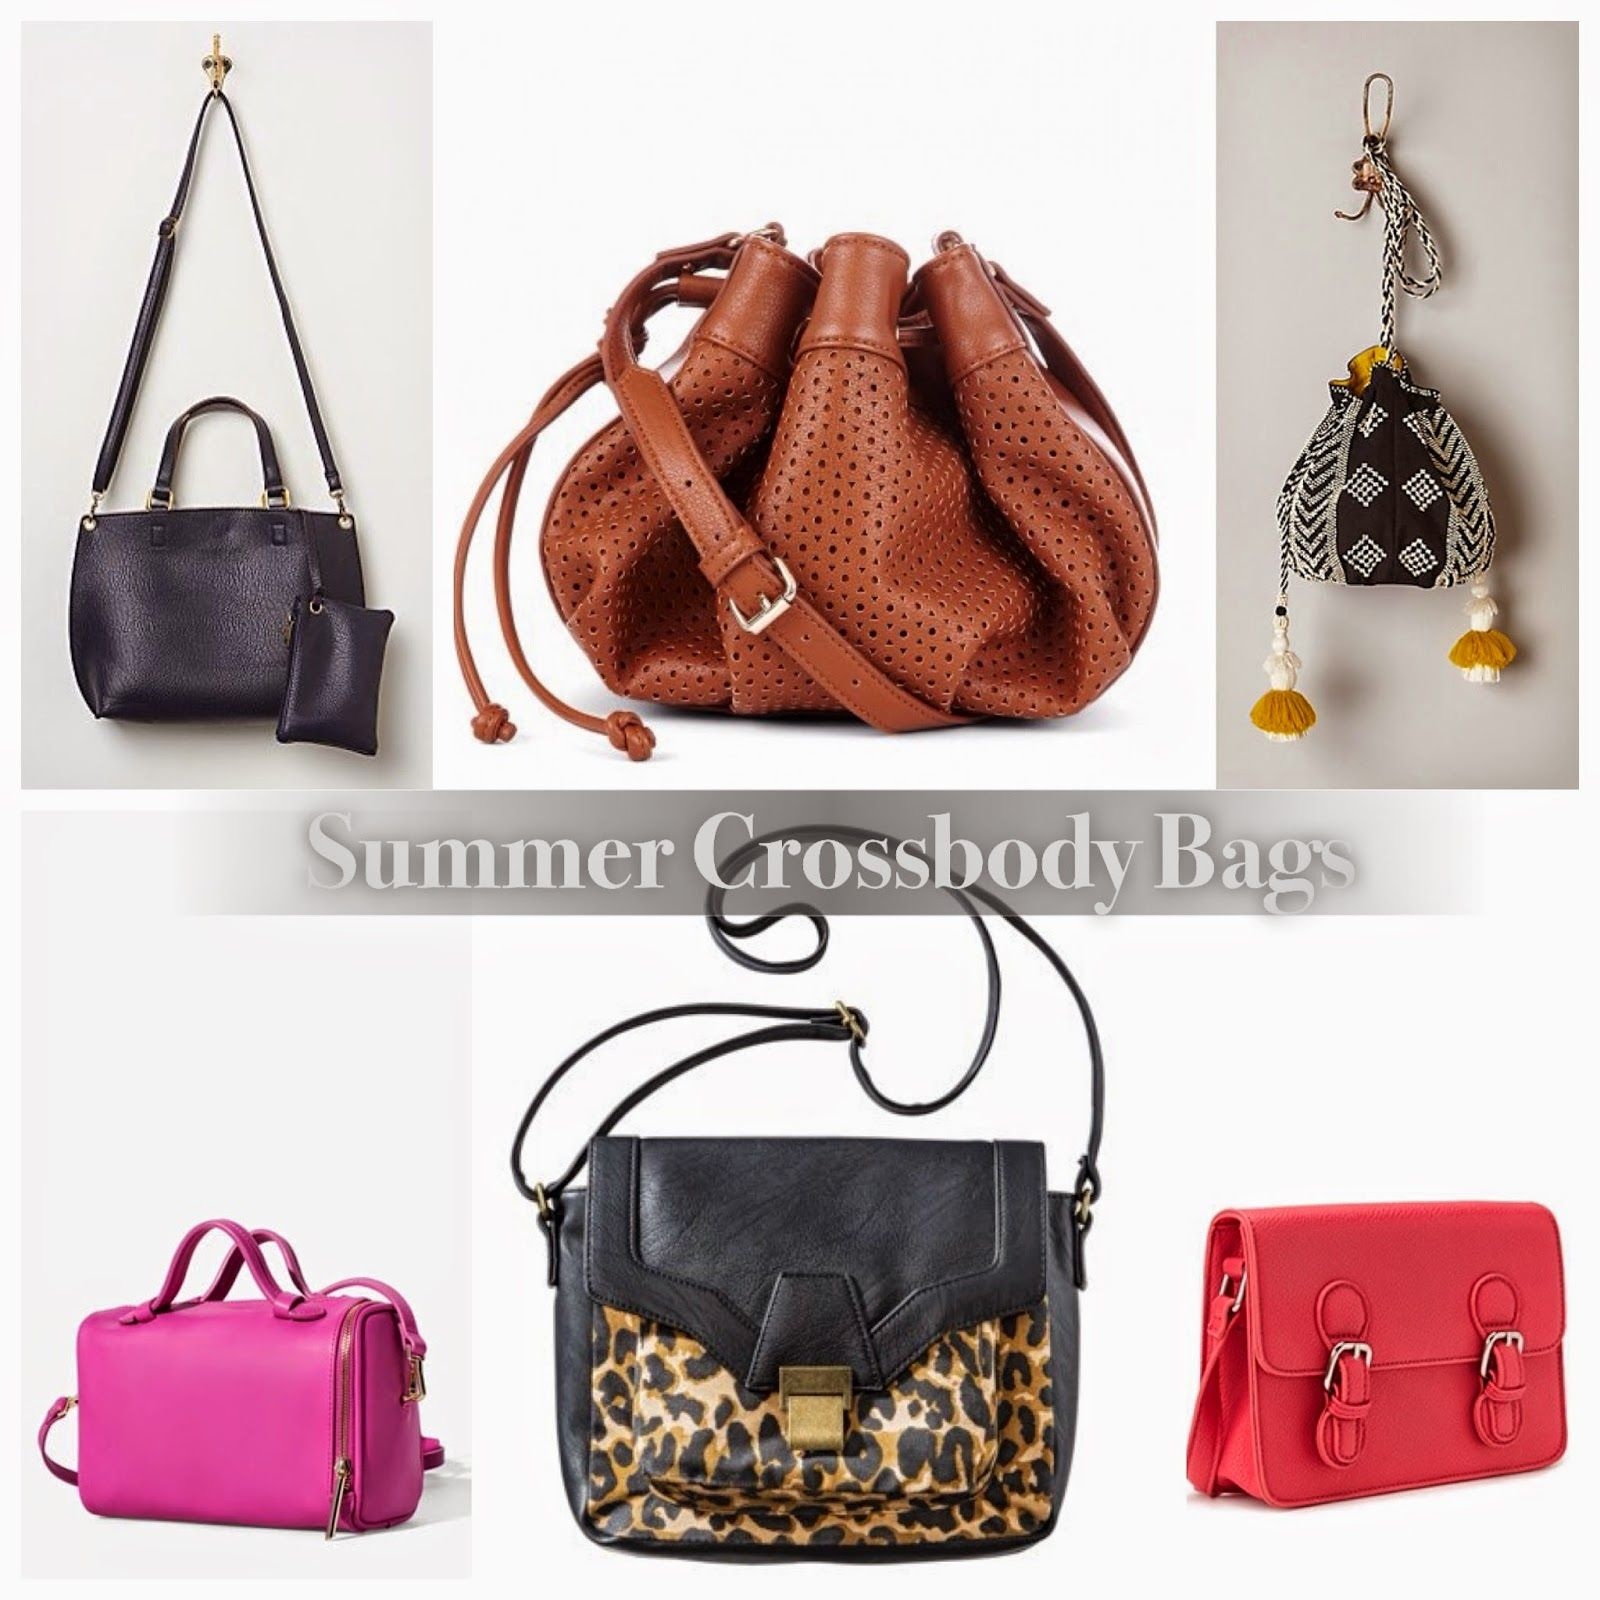 Affordable crossbody bags for the summer via @Quirky At Large ...